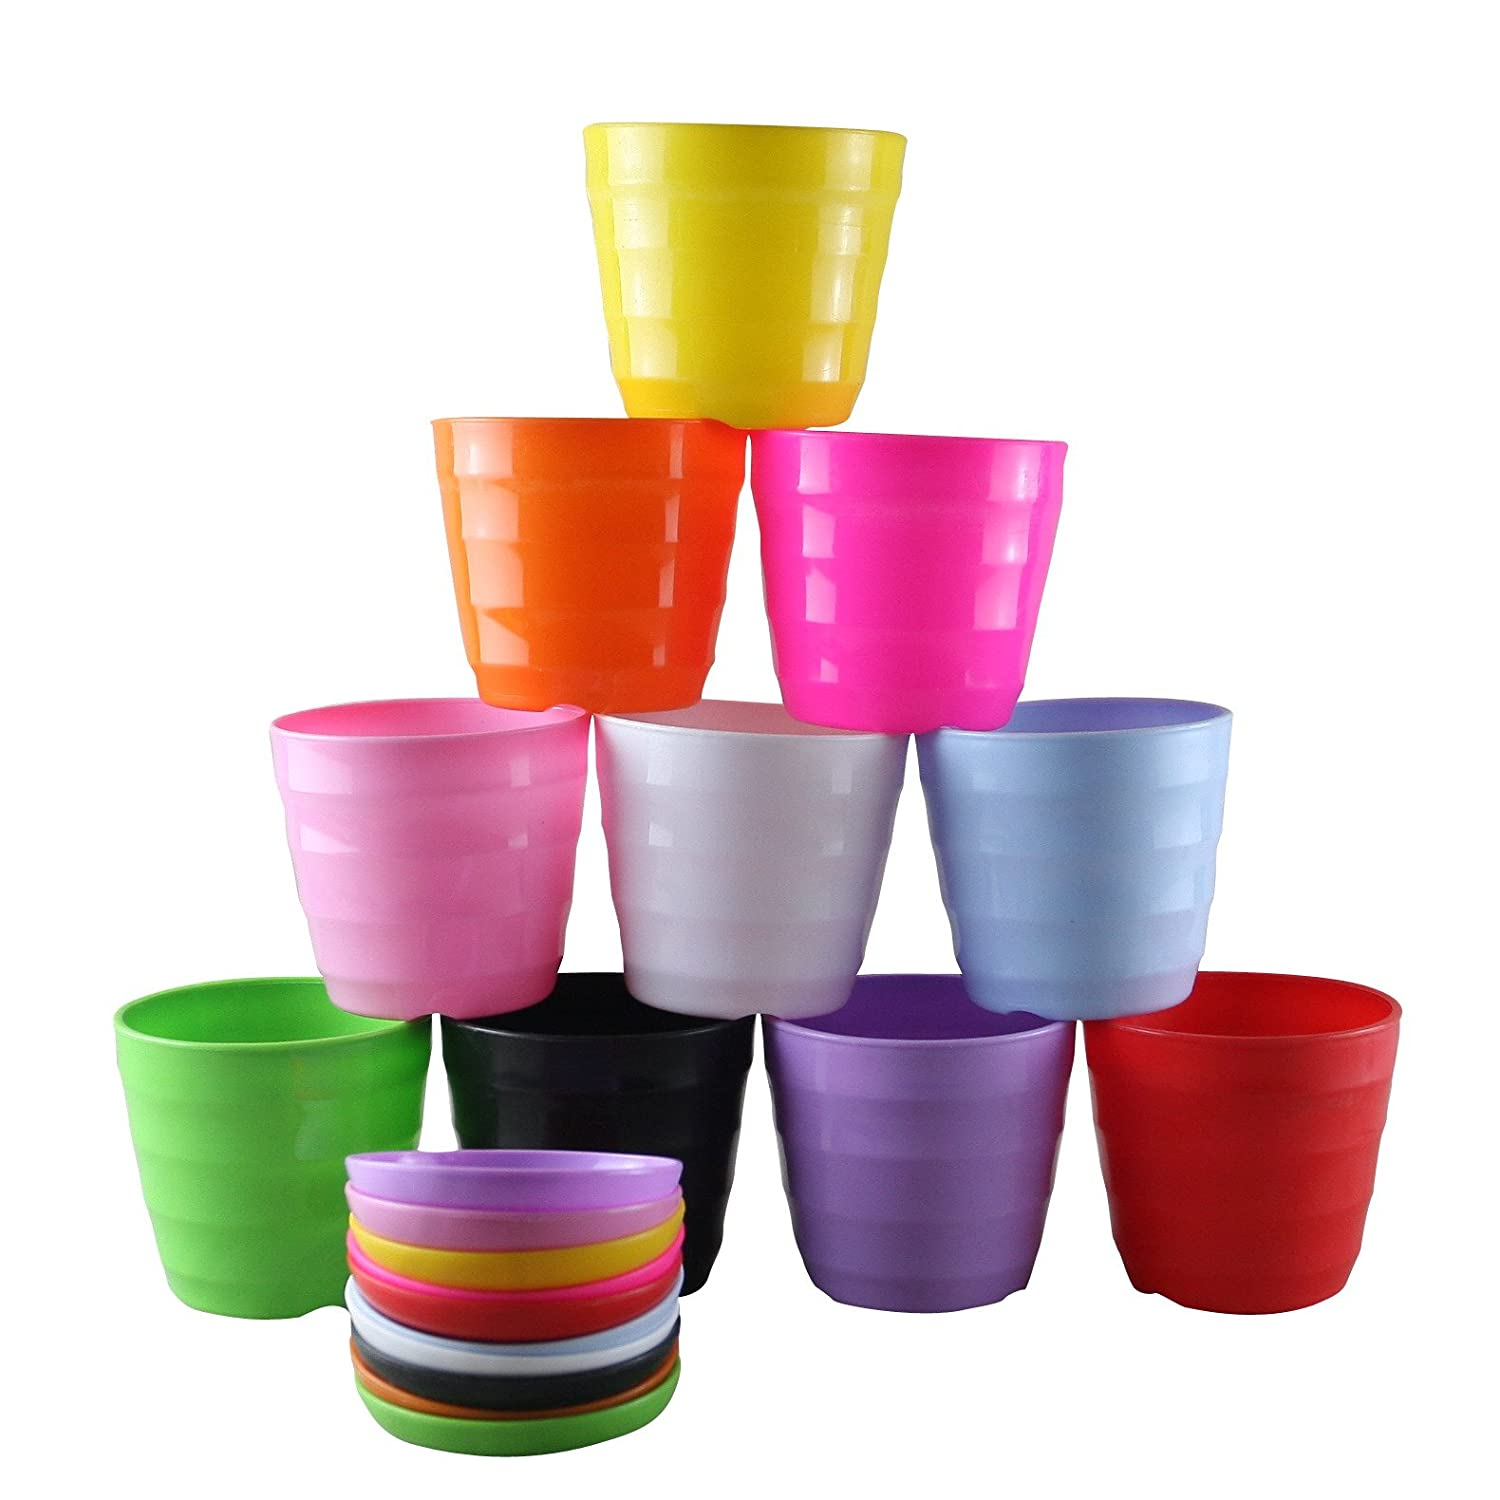 Truedays 4.3 Inch Set of 10 Pack Flower Pots Container Plant Saucer Multicolored Resin, All